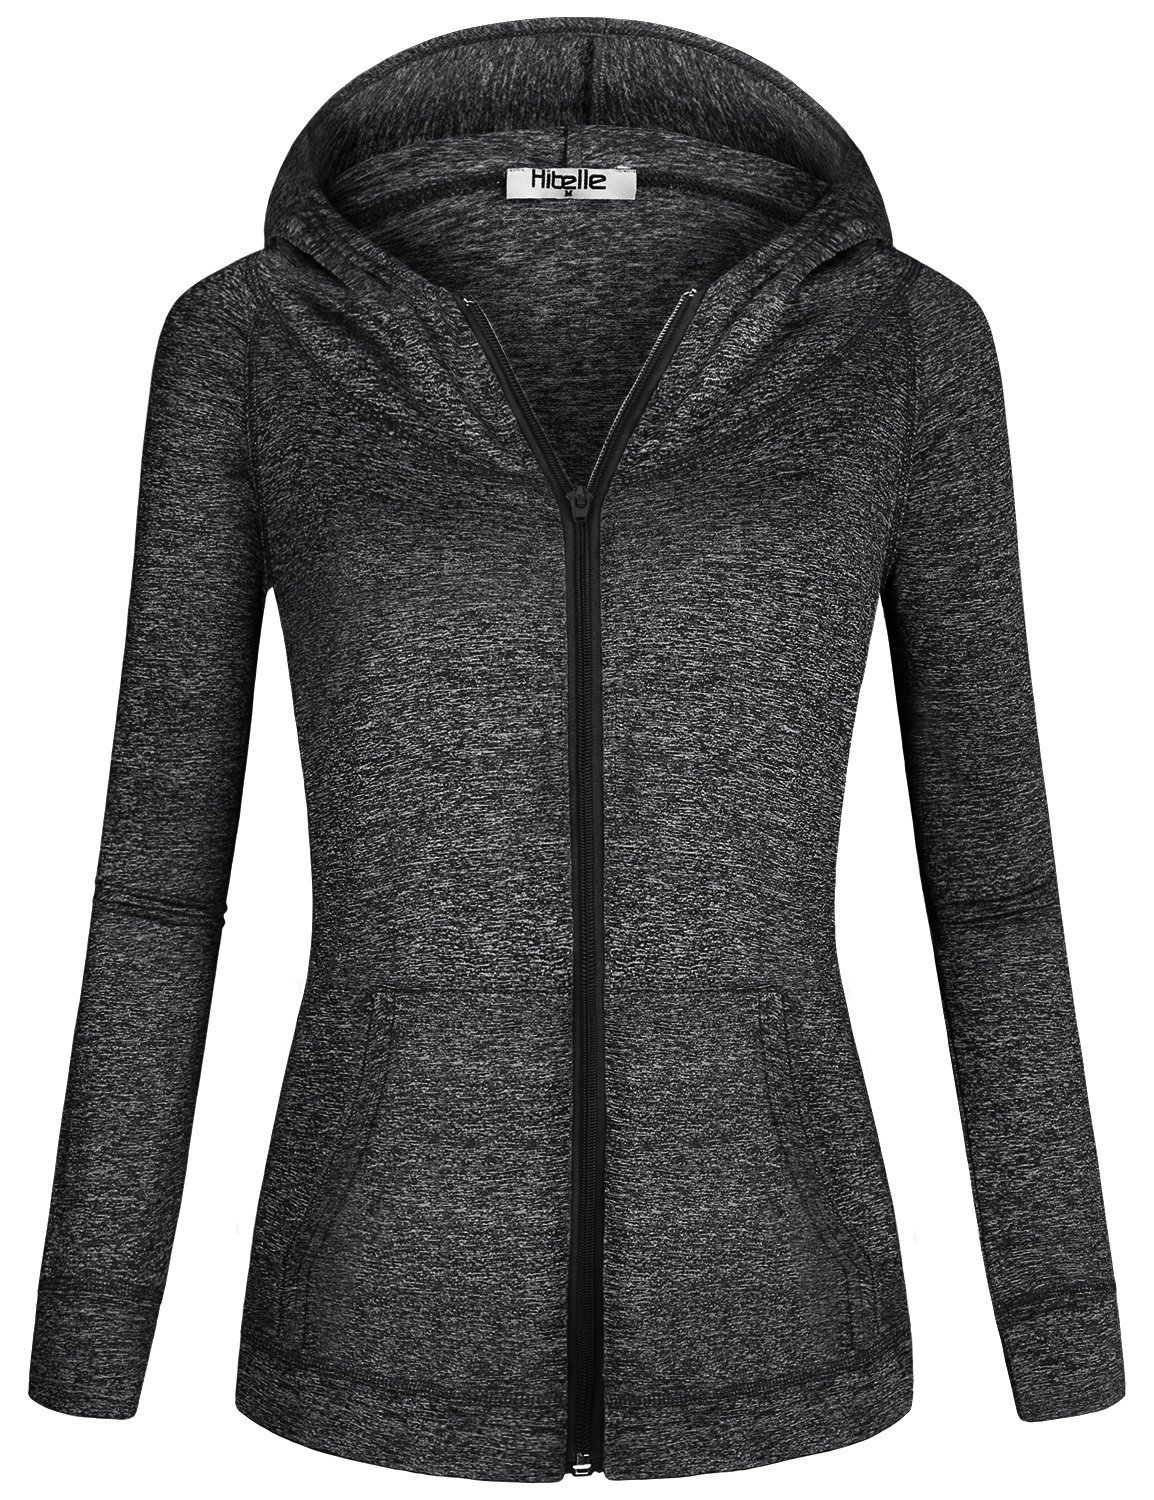 Hibelle Jackets for Women with Hoodie, Womans Black Sports Dressy Sweatshirts Raglan Sleeve Athletic Sporting Kangaroo Pouch Pockets Full Zip up Hoody Casual Running Track Suit XX Large